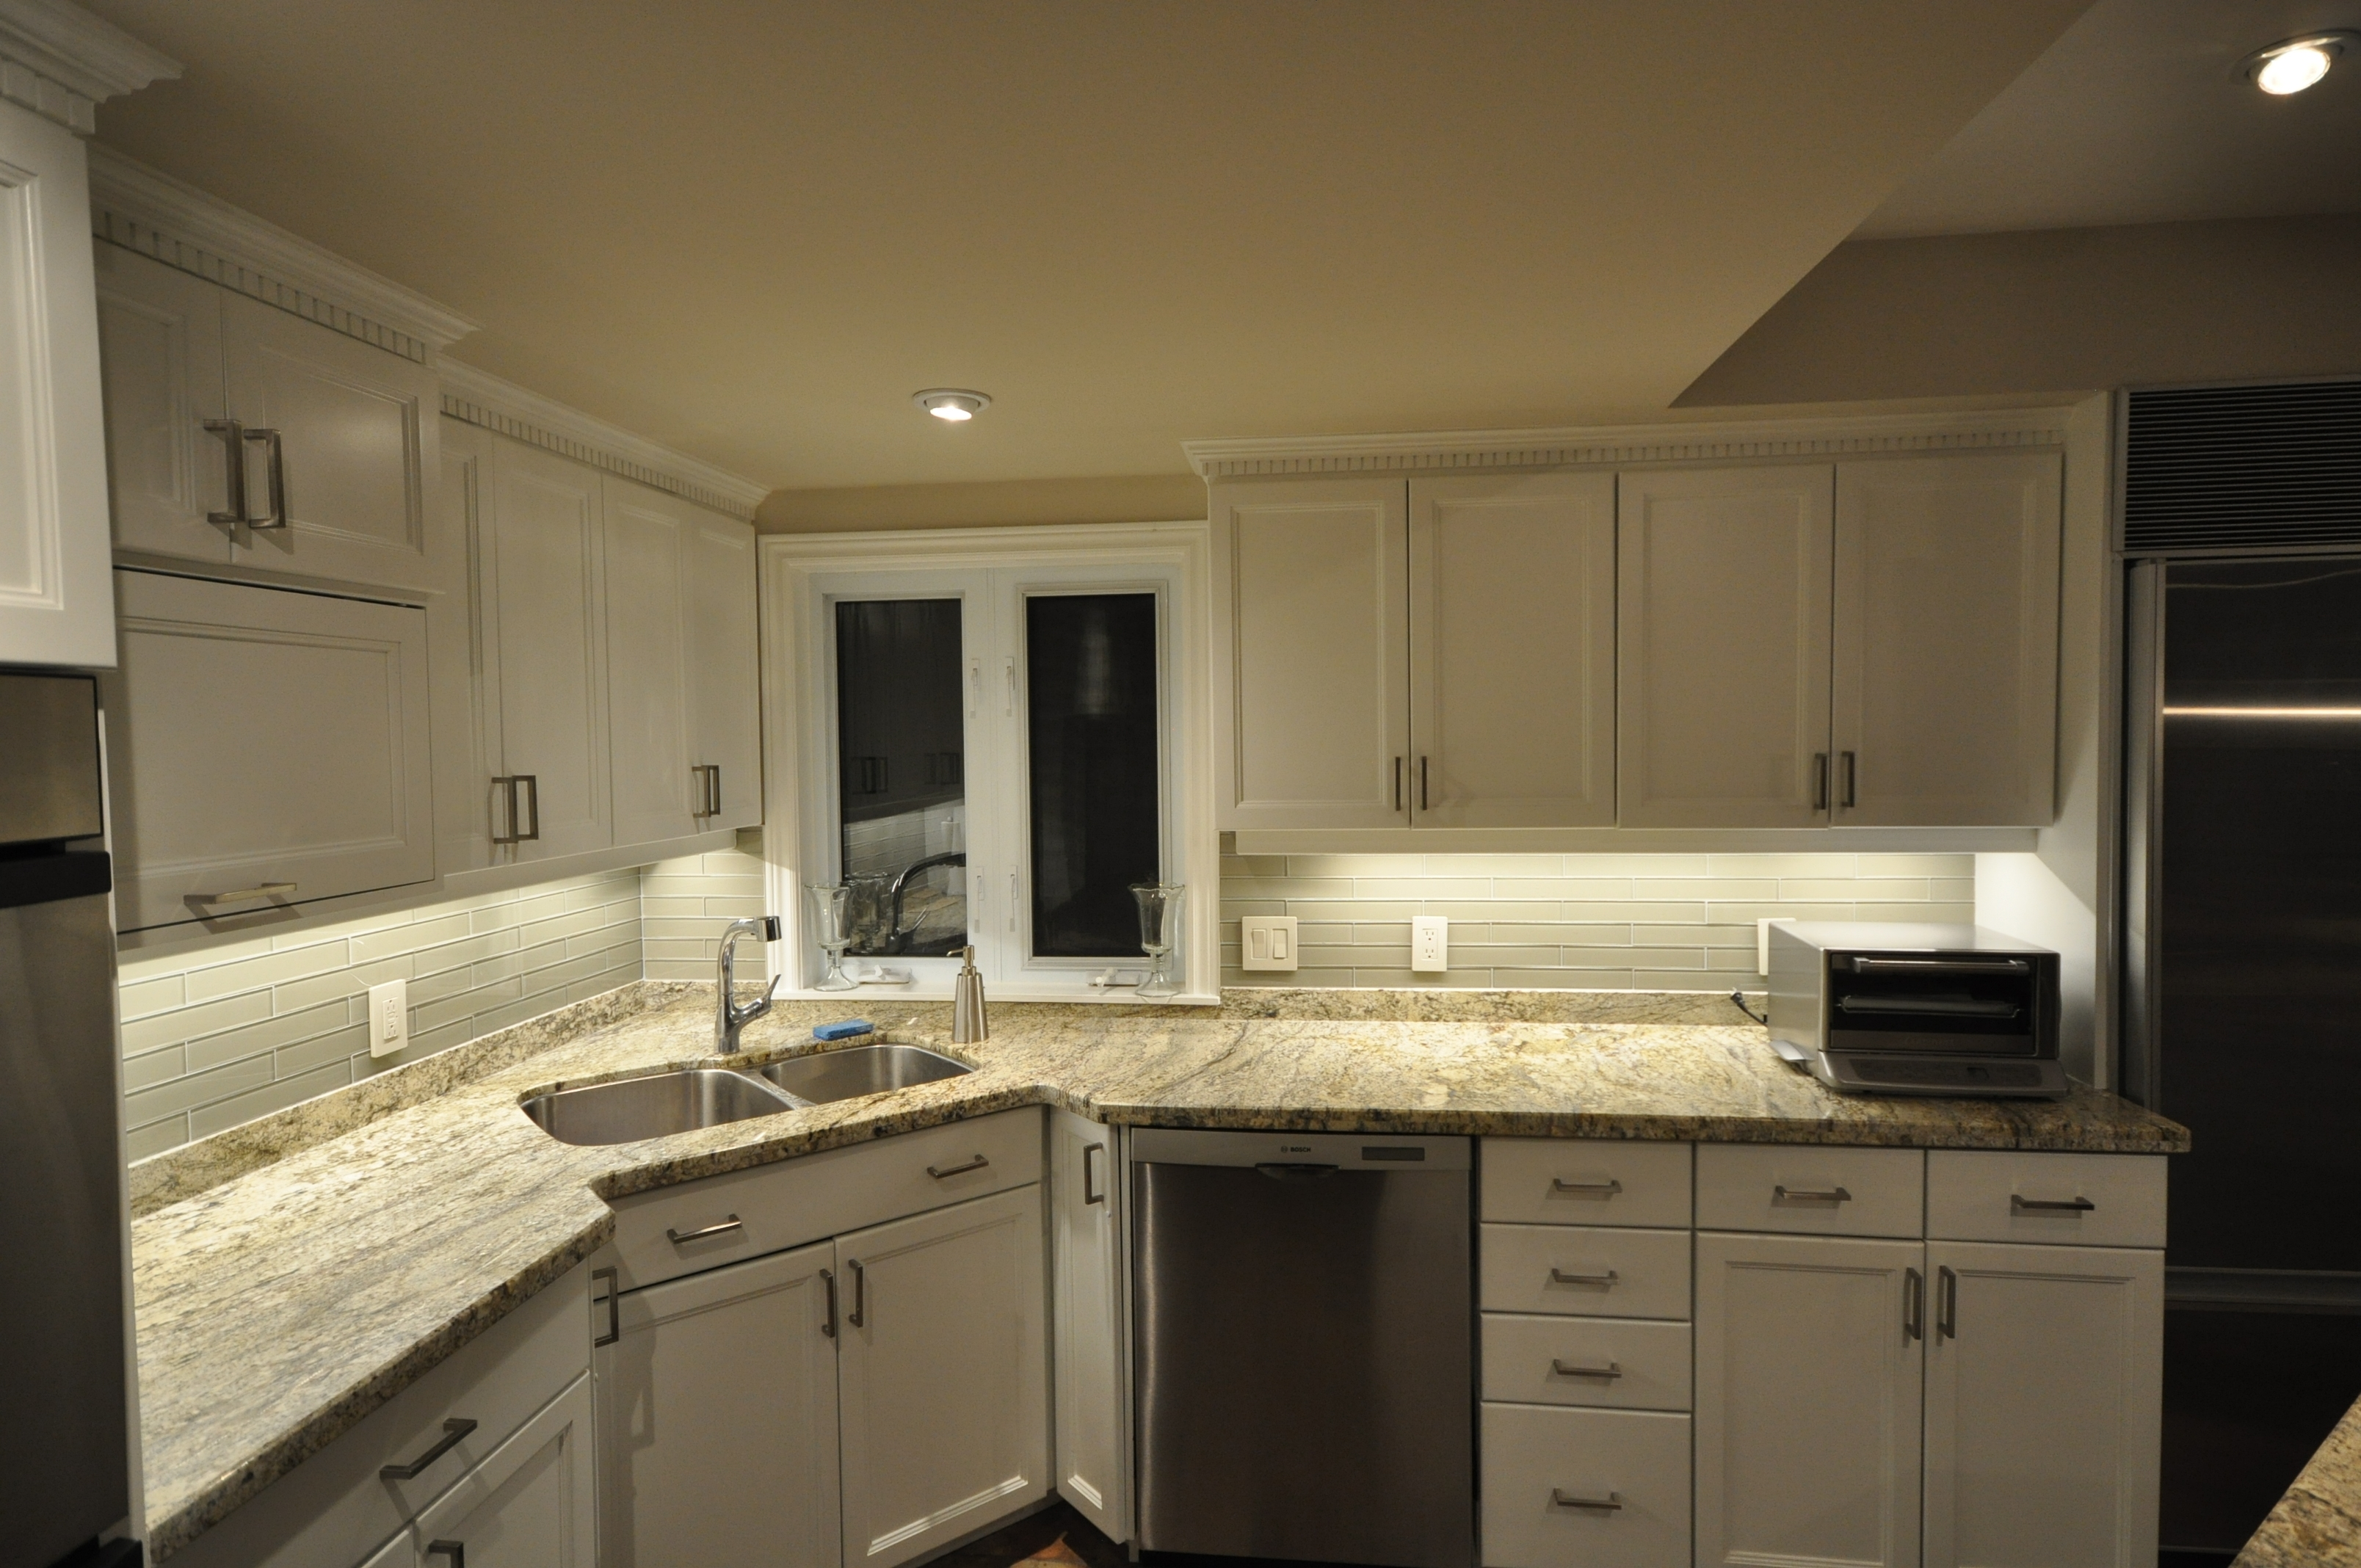 Strip Lights Under Kitchen Cabinets